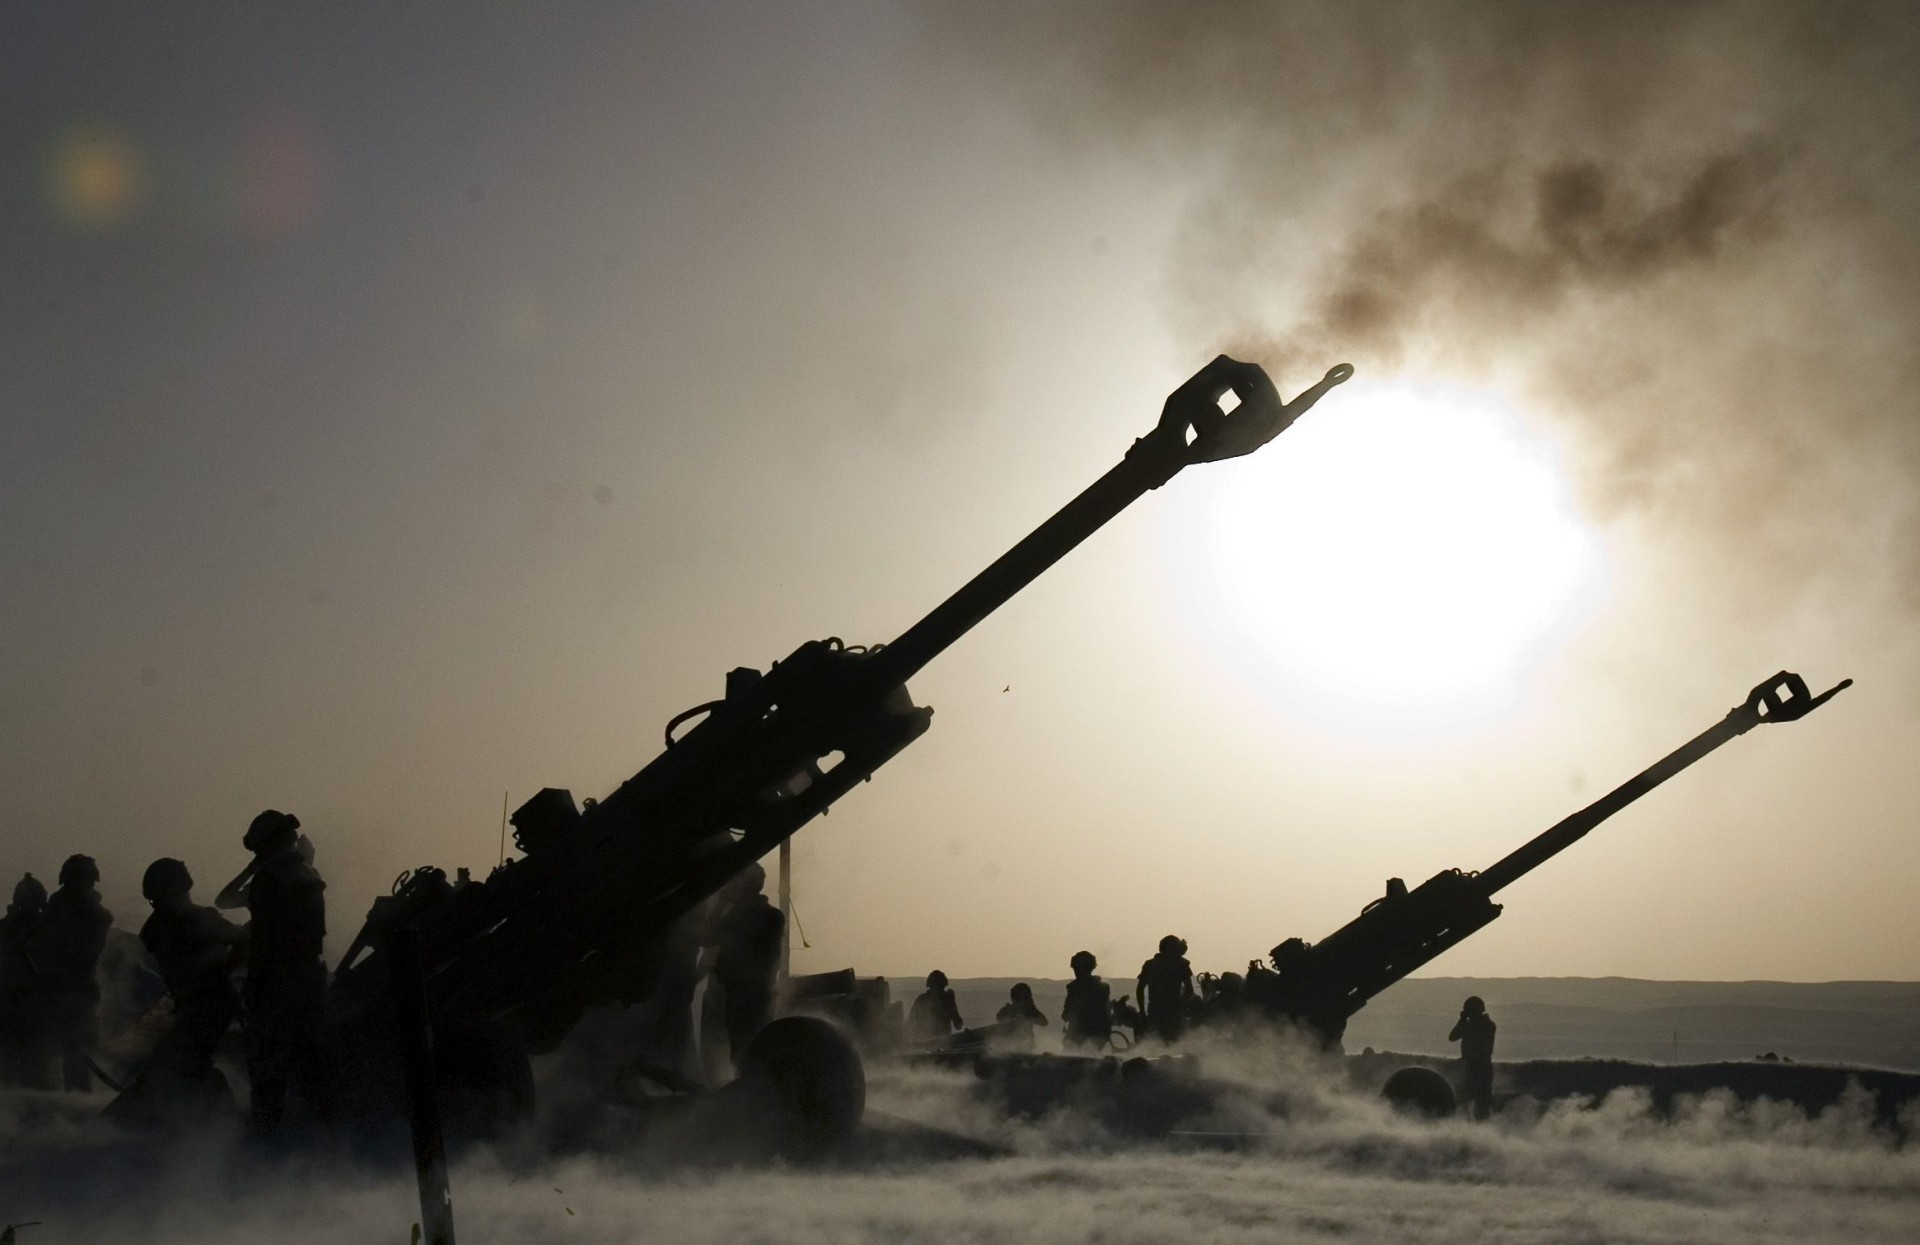 M777 howitzers in action at Afghanistan.